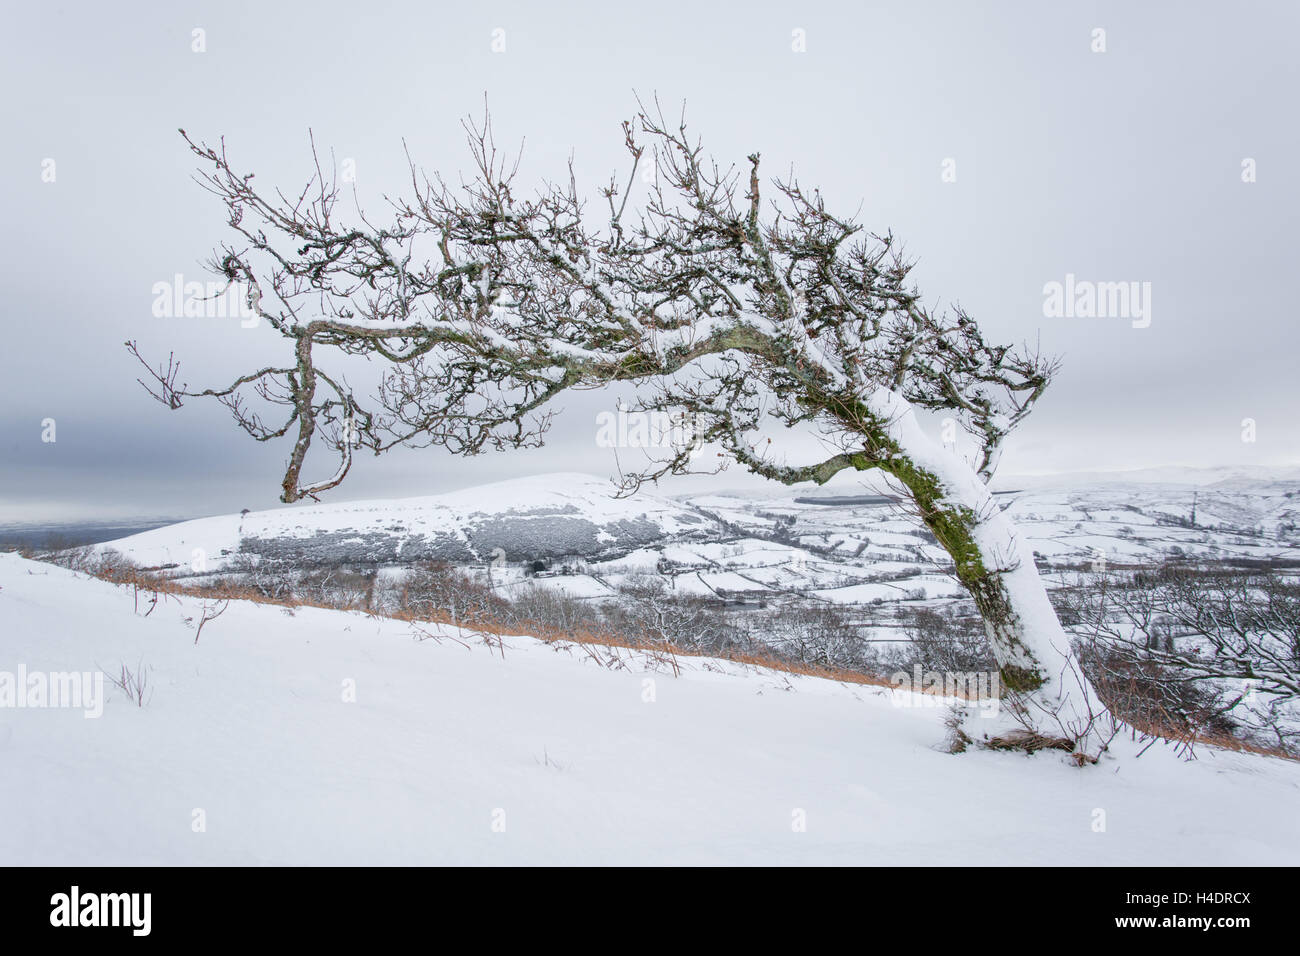 Lone twisted tree in the snow just after snow fall on Great Mell fell in the English Lake District near Ullswater - Stock Image